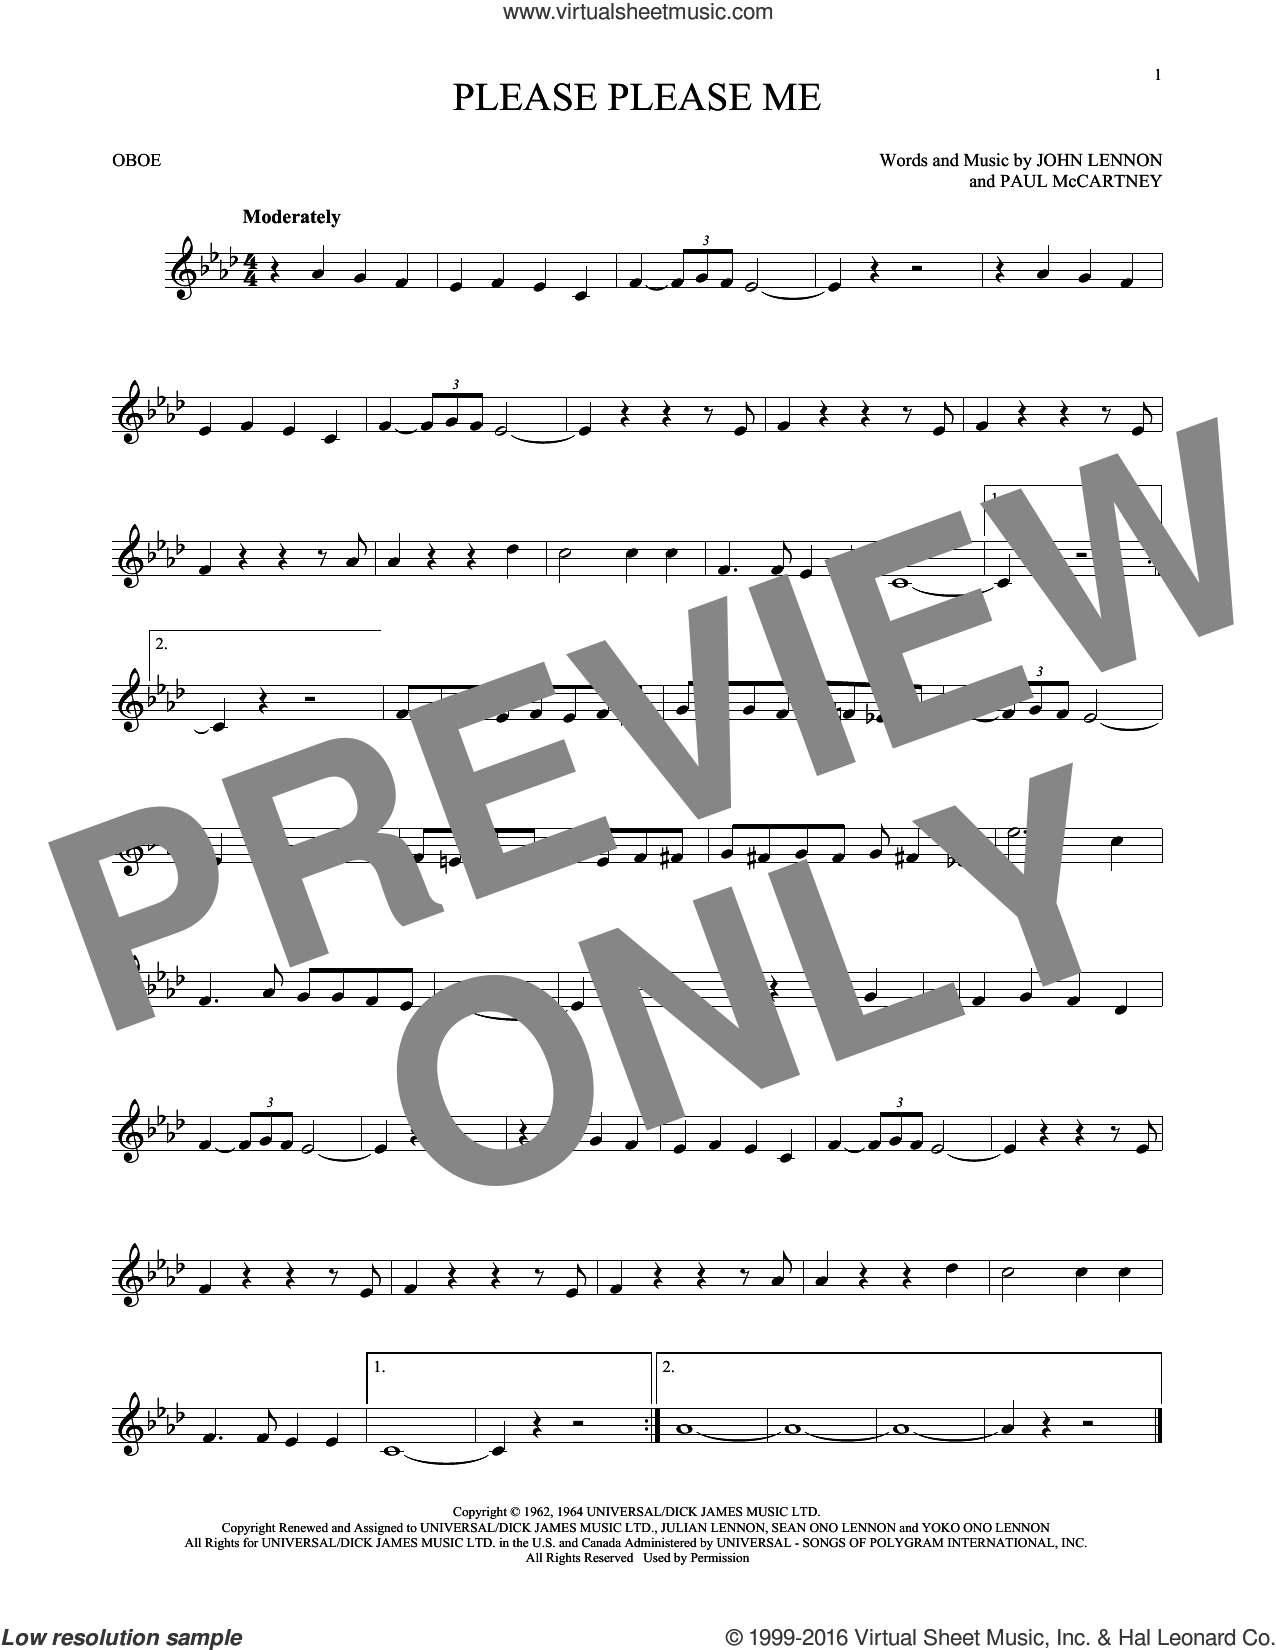 Please Please Me sheet music for oboe solo by The Beatles, John Lennon and Paul McCartney, intermediate skill level